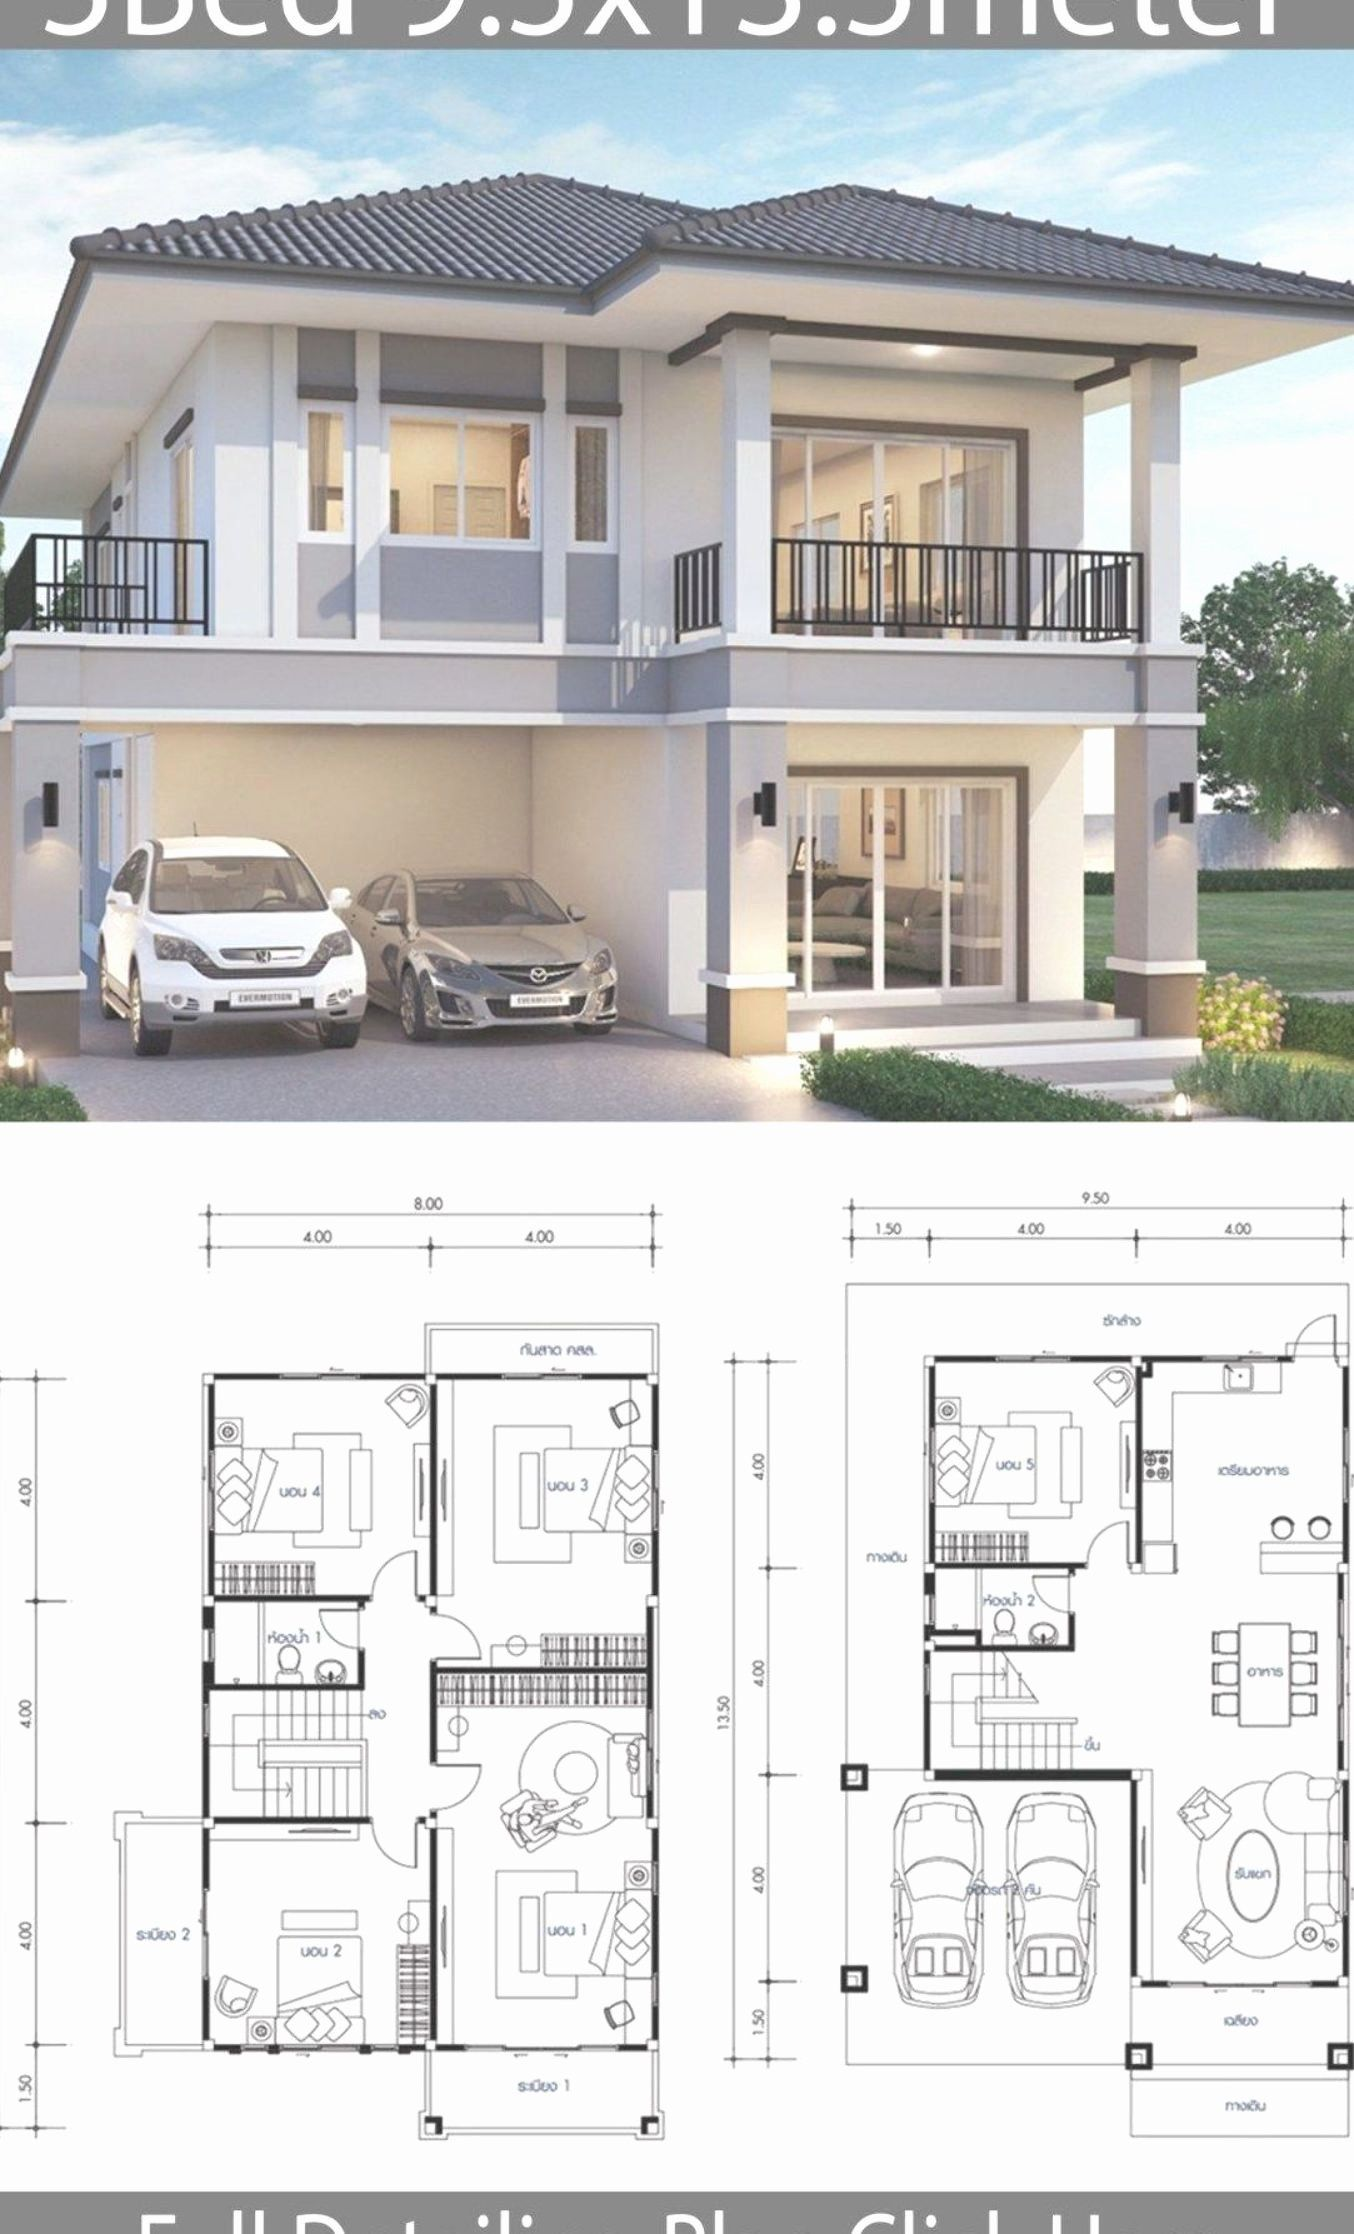 5 Bedroom Tiny House Plans Lovely House Design 9 5x13 5m With 5 Bedrooms Home Design With In 2020 Duplex House Design Modern House Plans Diy Tiny House Plans